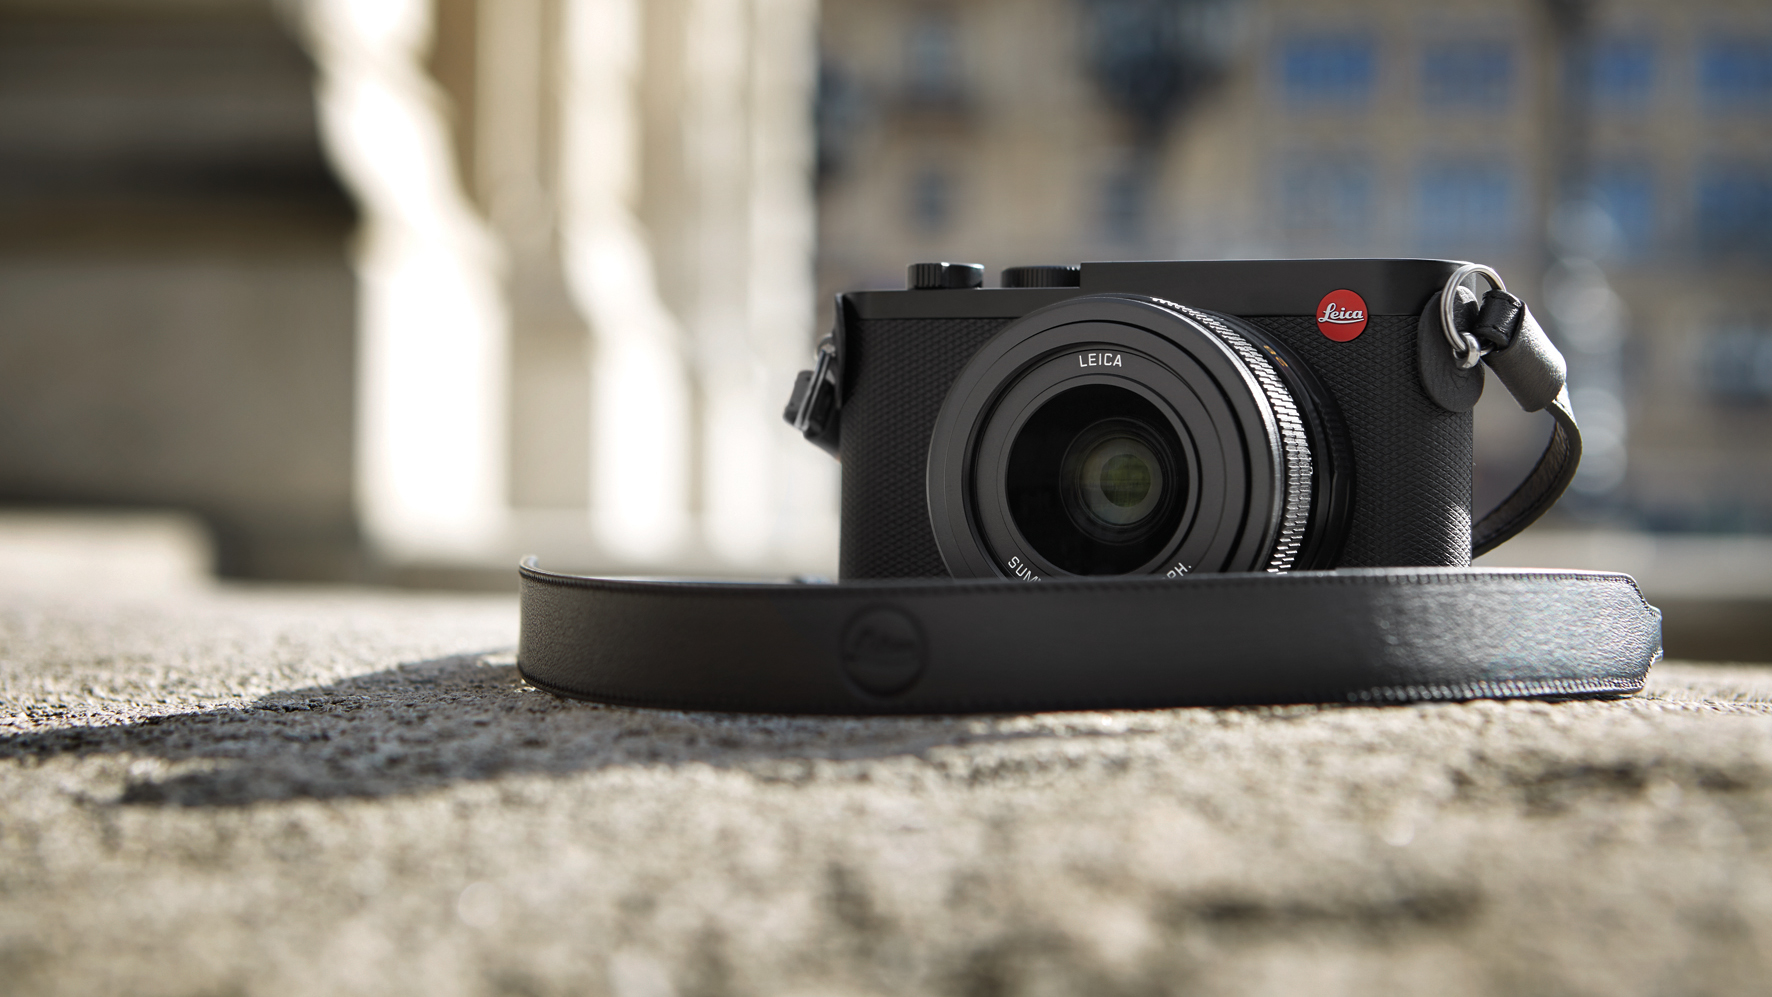 The Leica Q2 could be the ultimate compact camera | TechRadar